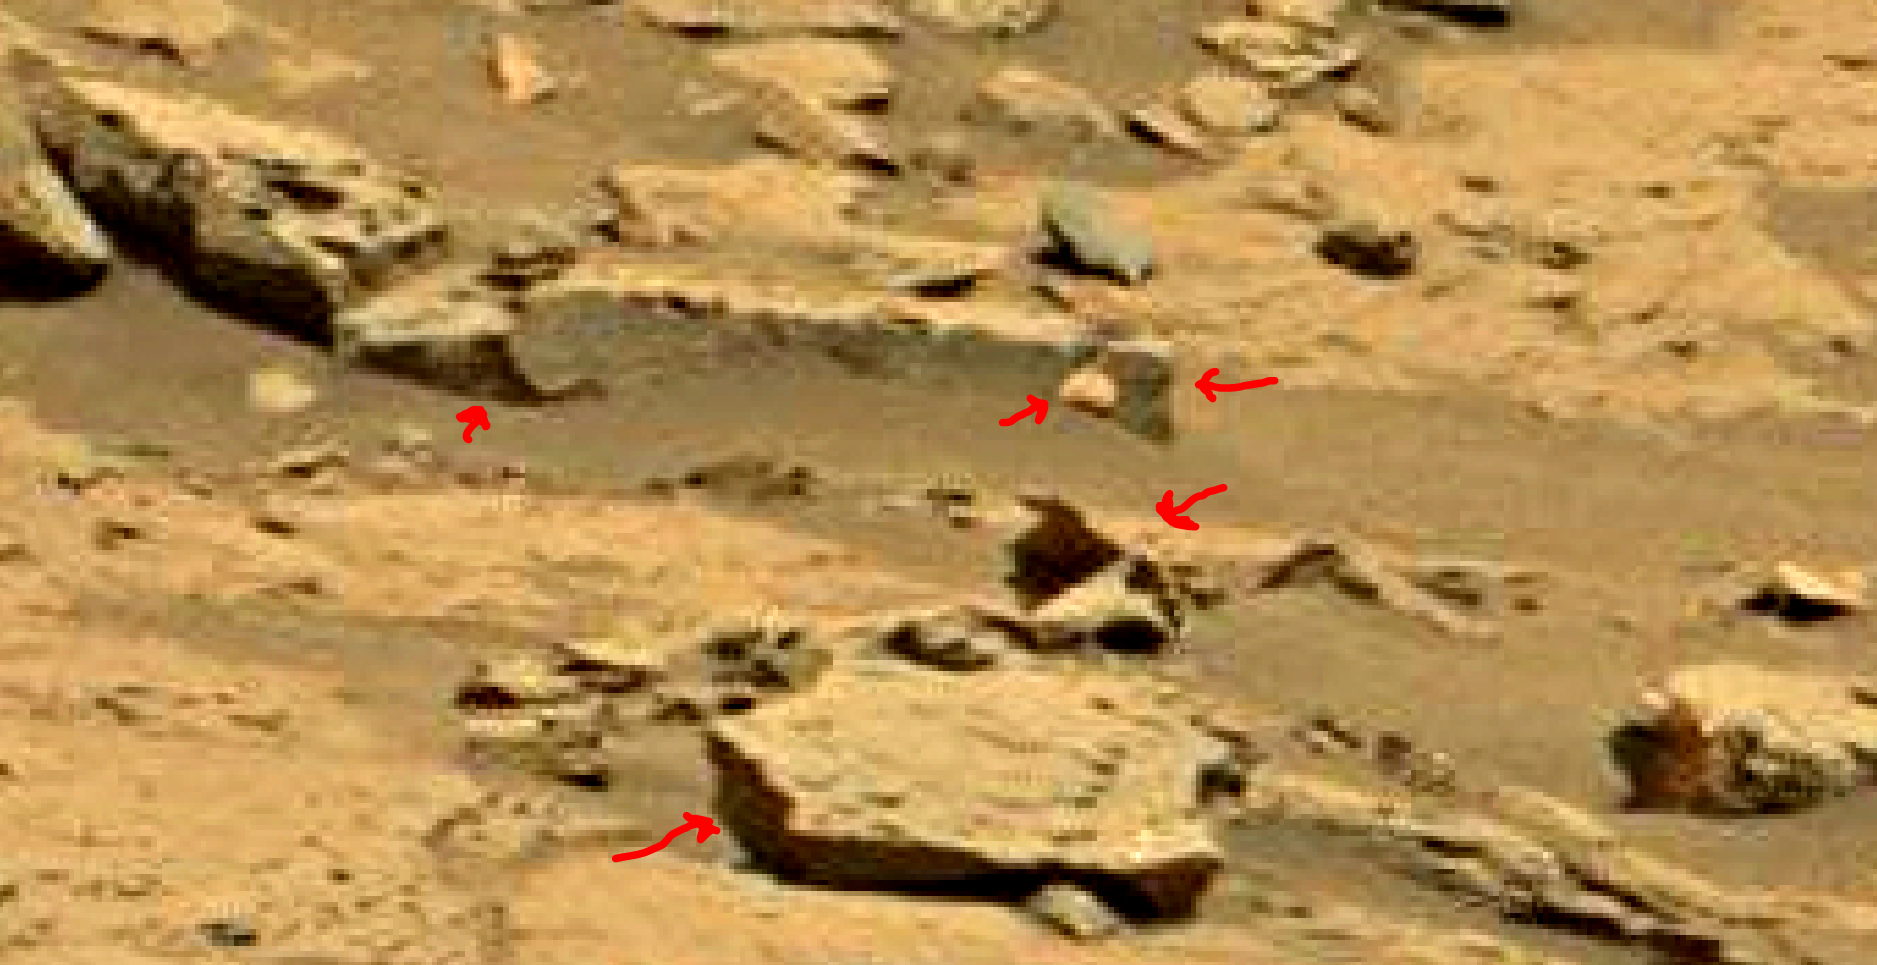 mars sol 1353 anomaly-artifacts 58a4 was life on mars